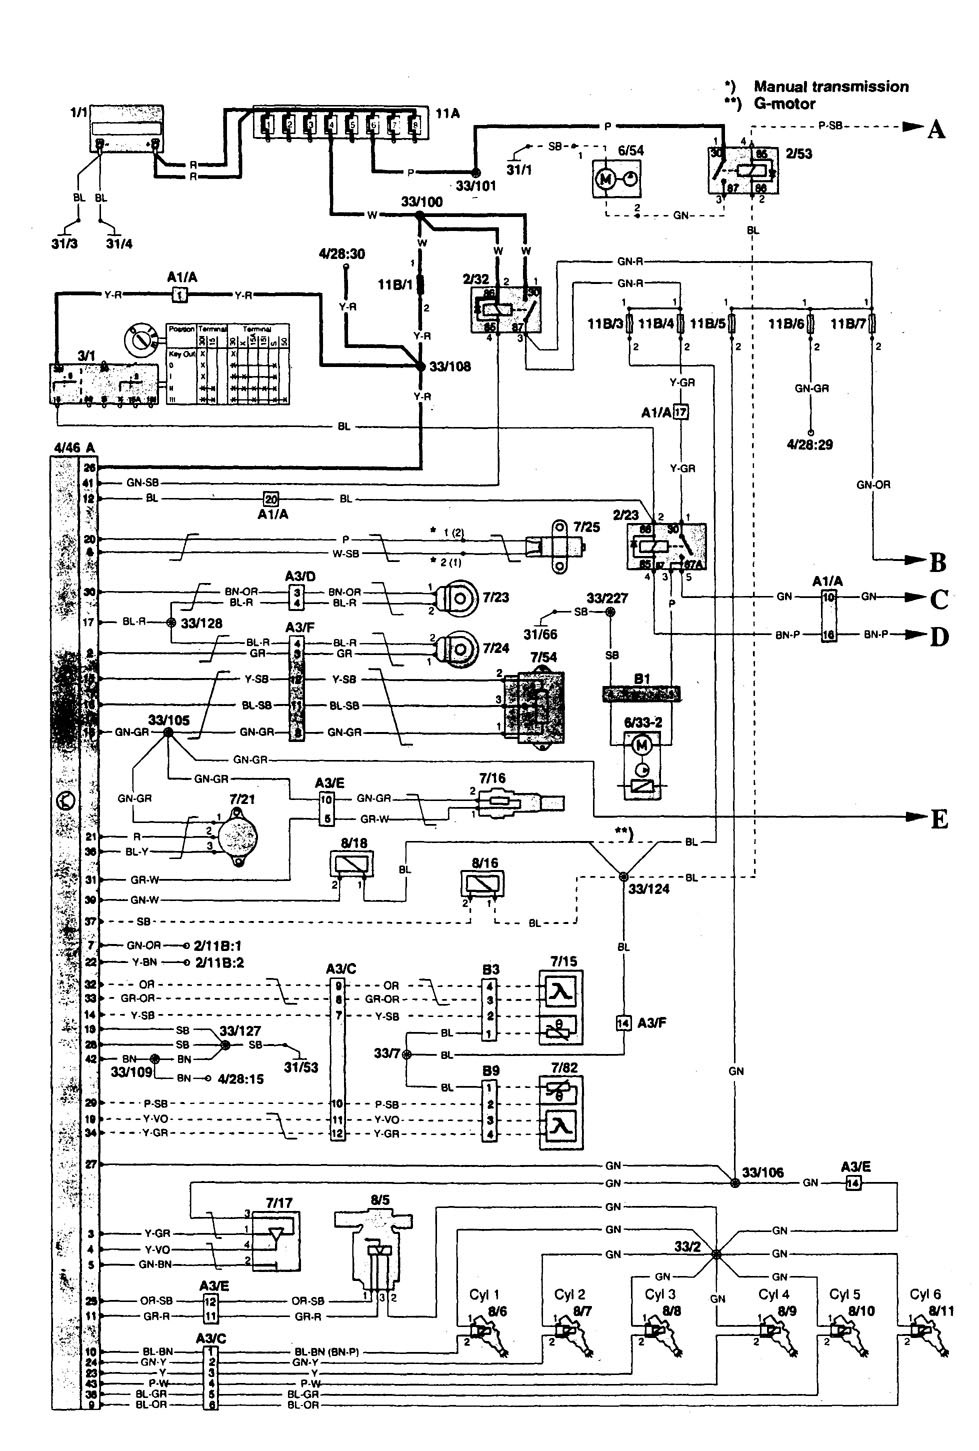 DIAGRAM] 1995 Volvo 960 Radio Wiring Diagram FULL Version HD Quality Wiring  Diagram - OUTLETDIAGRAM.ITALIARESIDENCE.IT | Volvo 960 Wiring Diagram |  | Diagram Database